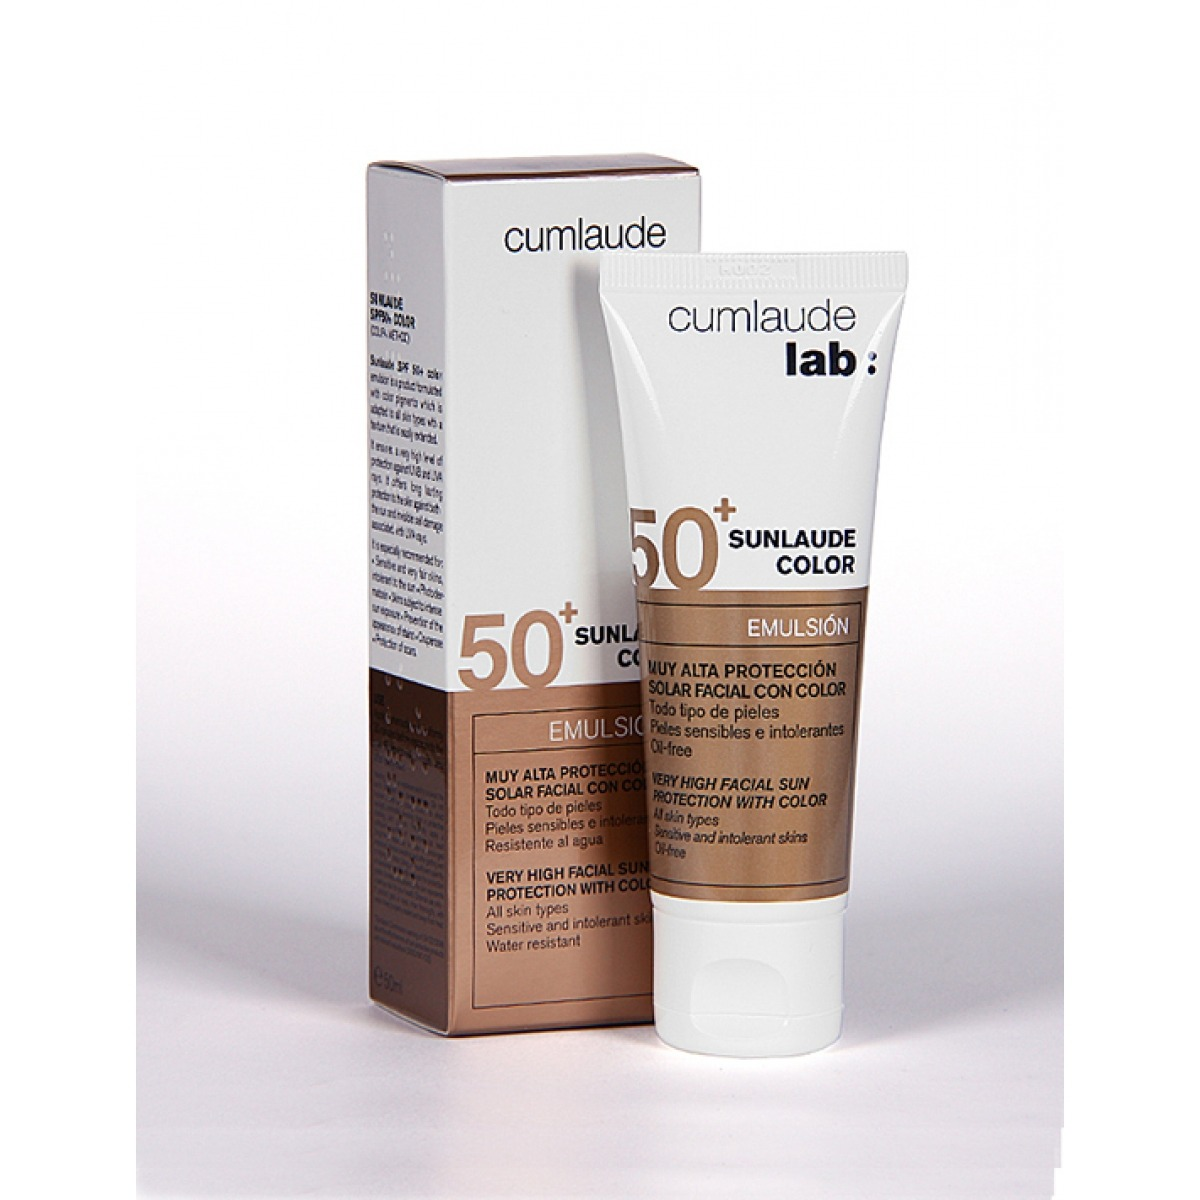 SUNLAUDE SPF 50 EMULSION FACIAL CON COLOR.